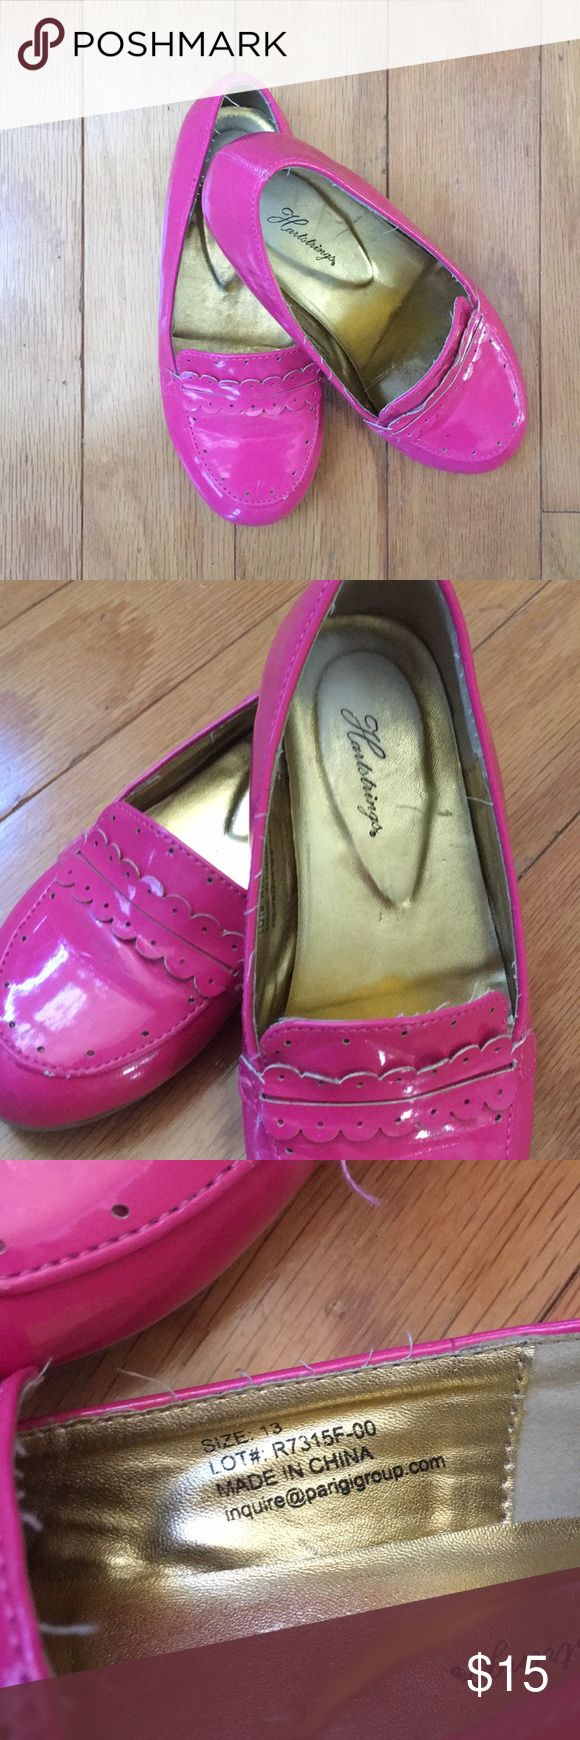 Hartstrings Girls Loafer GUC; Hot Pink and ready for your girl!!! Hartstrings Shoes Dress Shoes